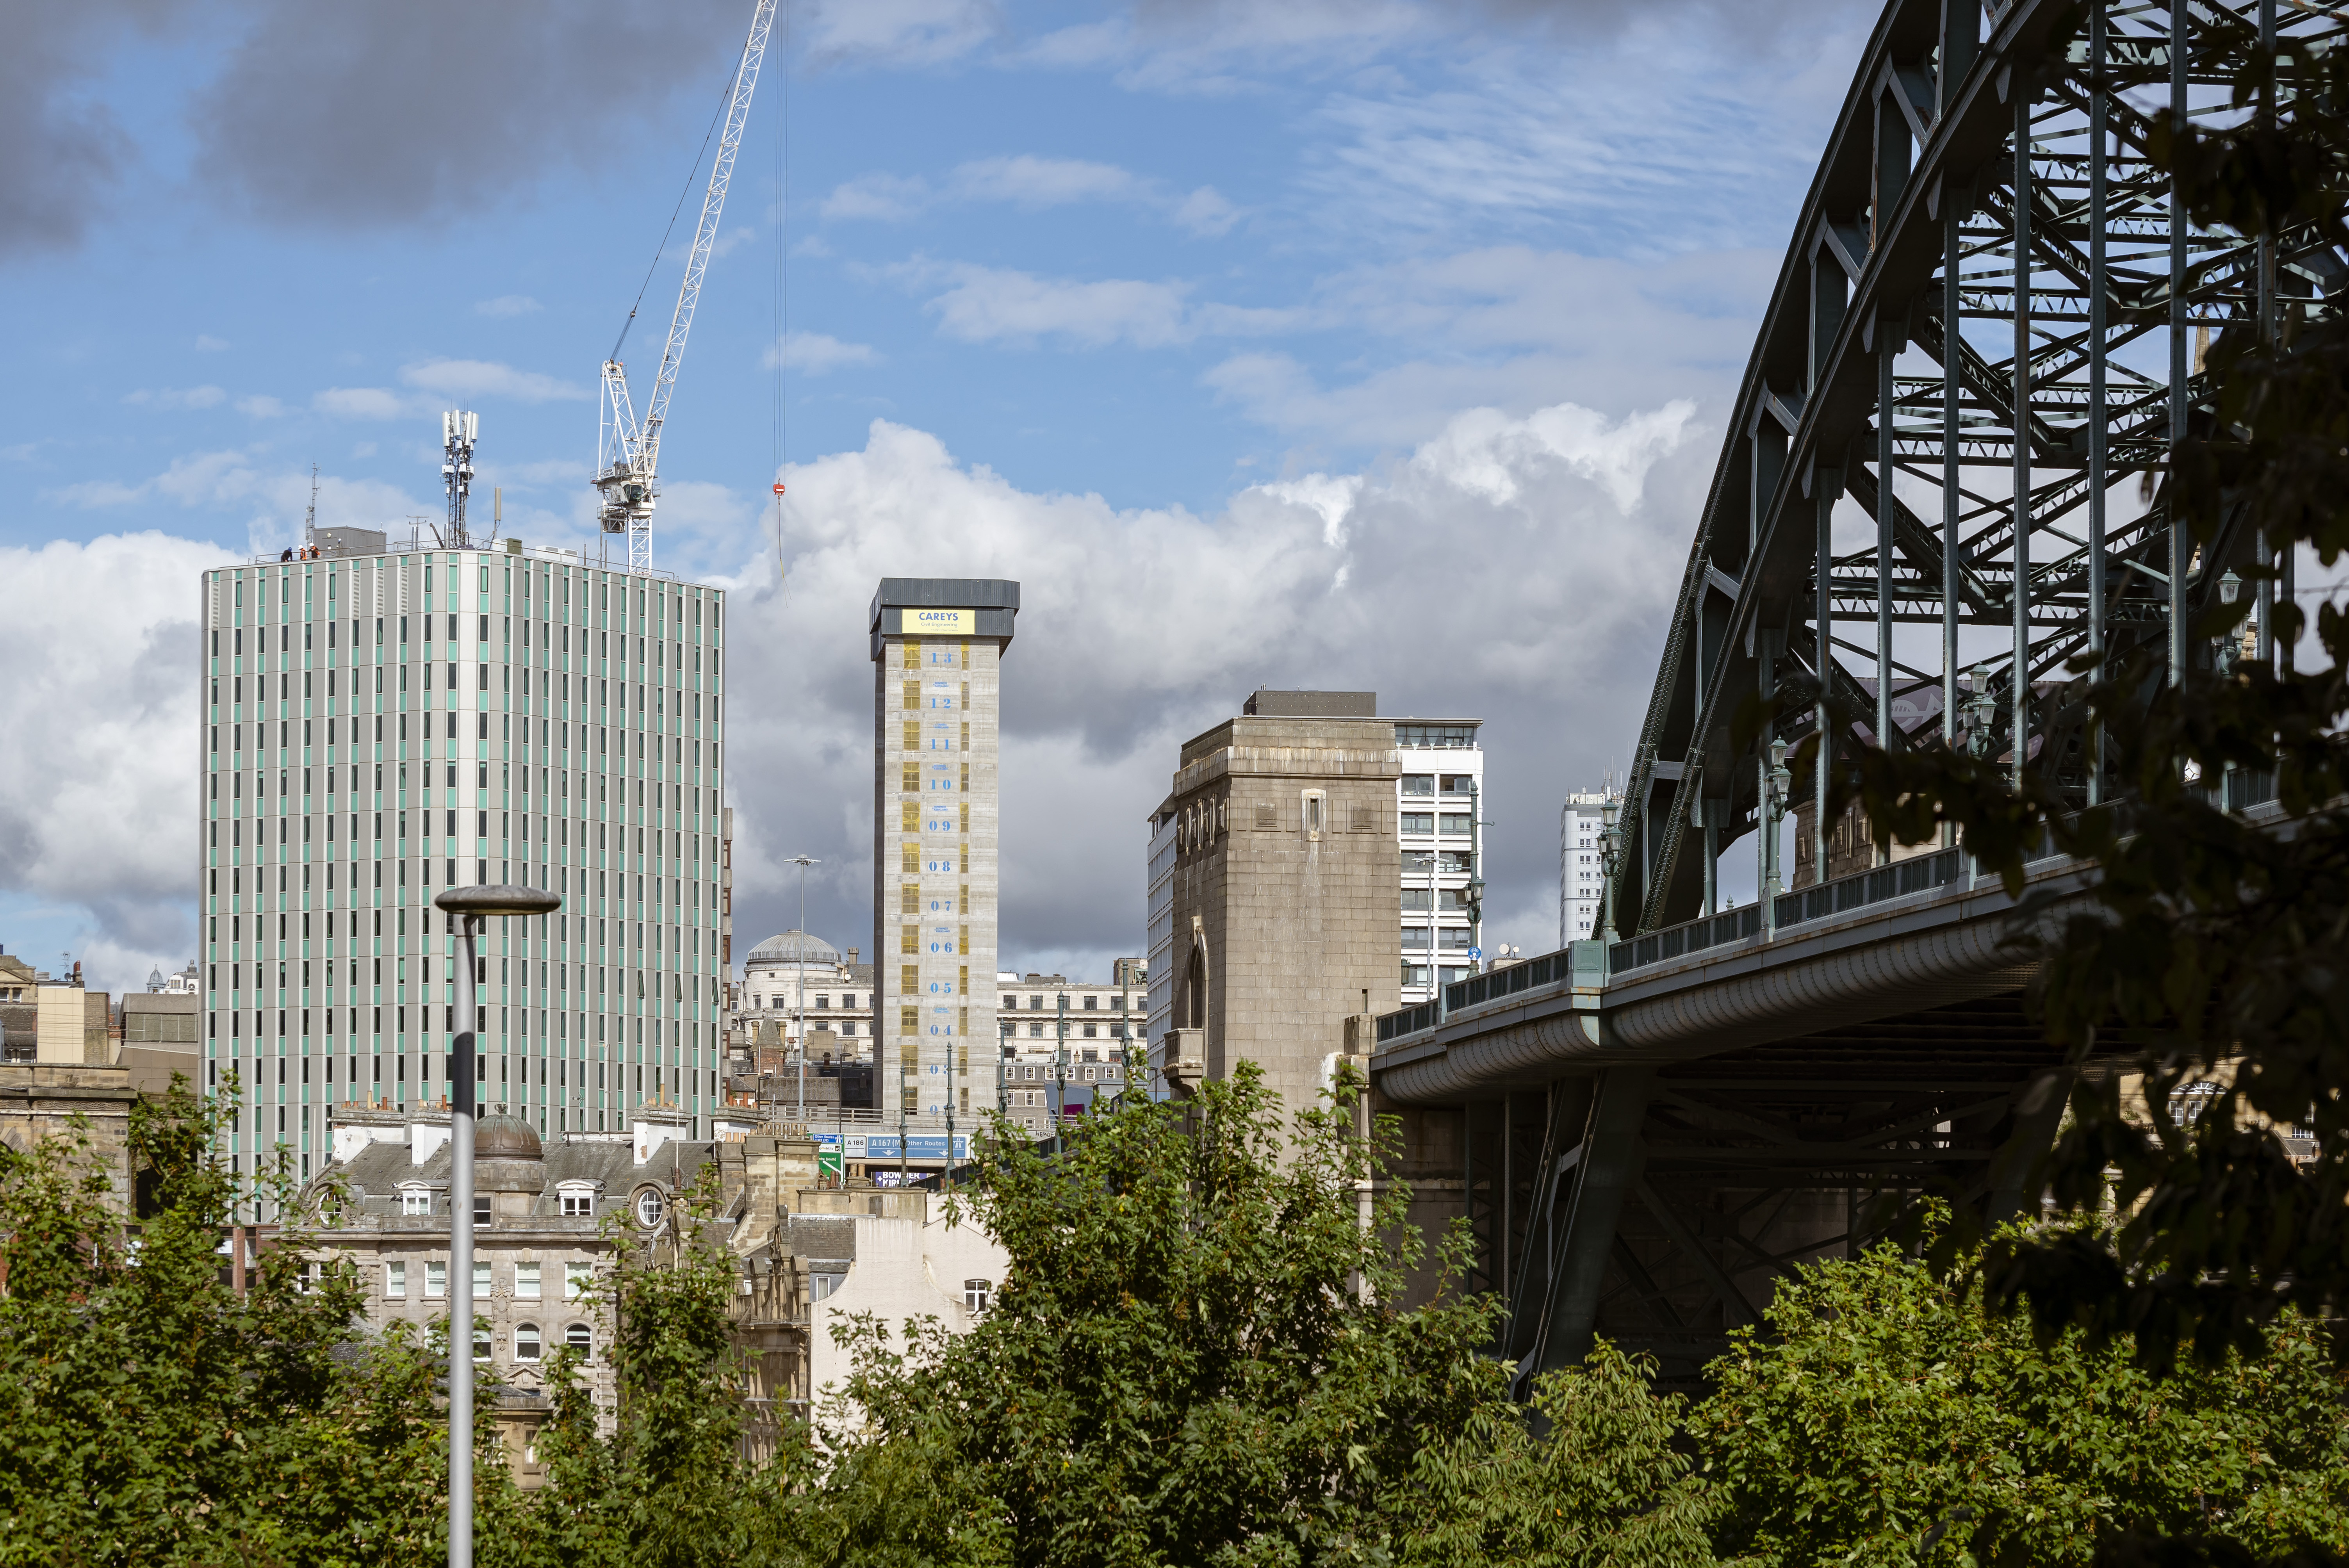 Skyline image of Newcastle city centre. The green Tyne bridge is nestled to the right of the image and the new grey concrete of the Bank House building stands tall in the middle of the image with a large crane towering over it to its left. There are green tree tops in the foreground of the image.